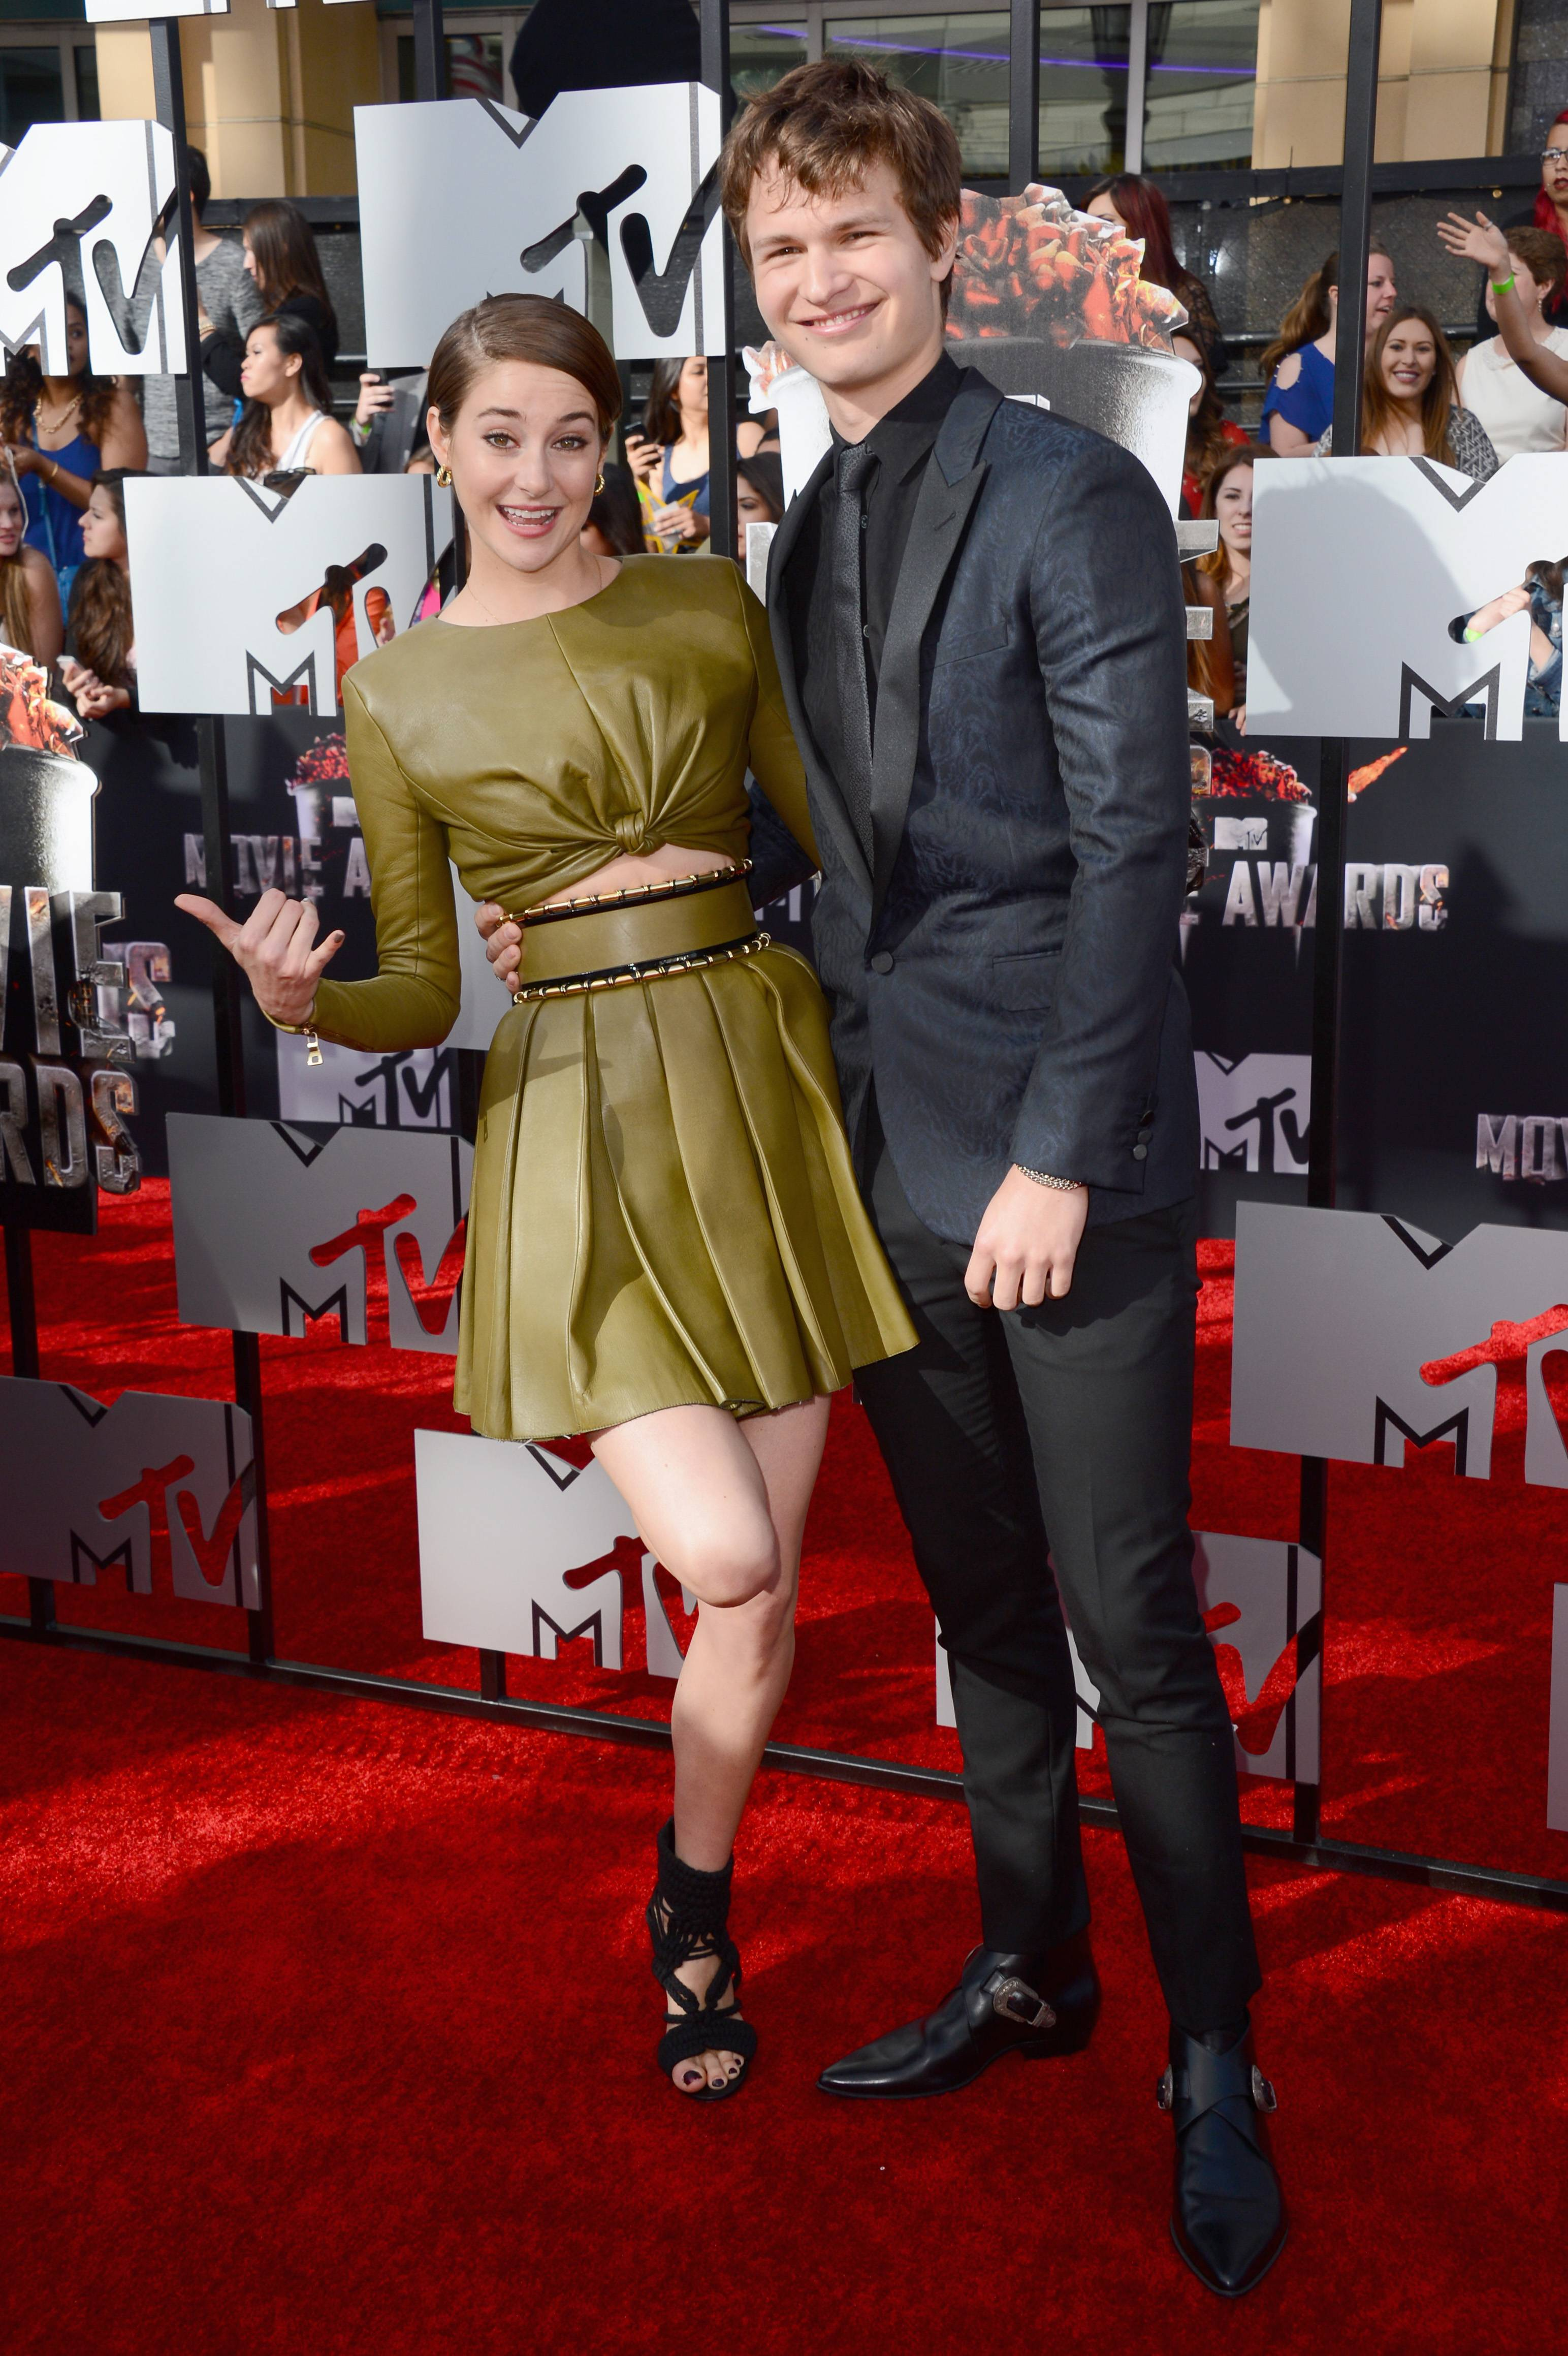 Shailene Woodley, left, and Ansel Elgort arrive at the MTV Movie Awards on Sunday.